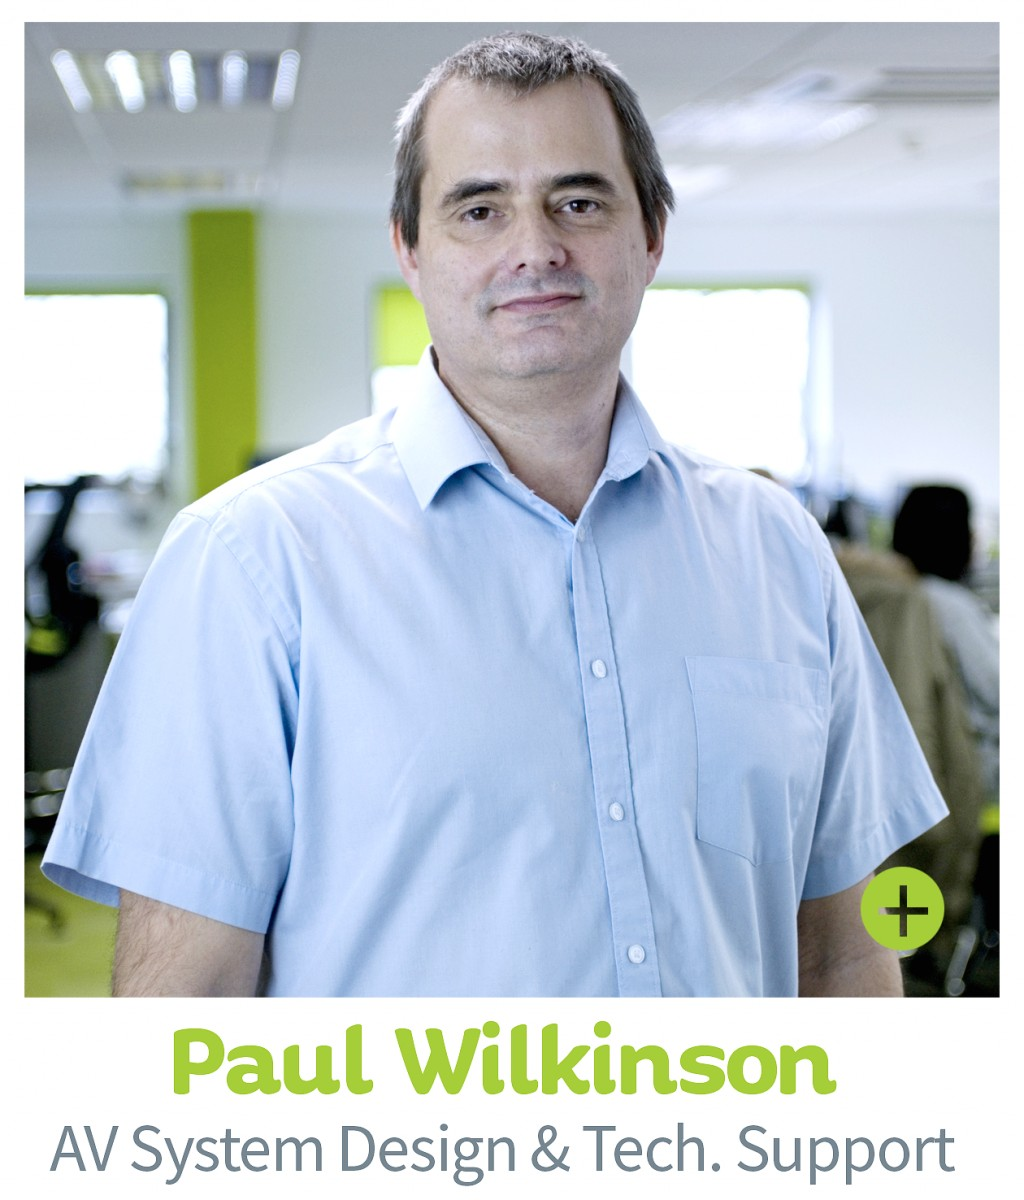 Paul Wilkinson, CIE AV Solutions